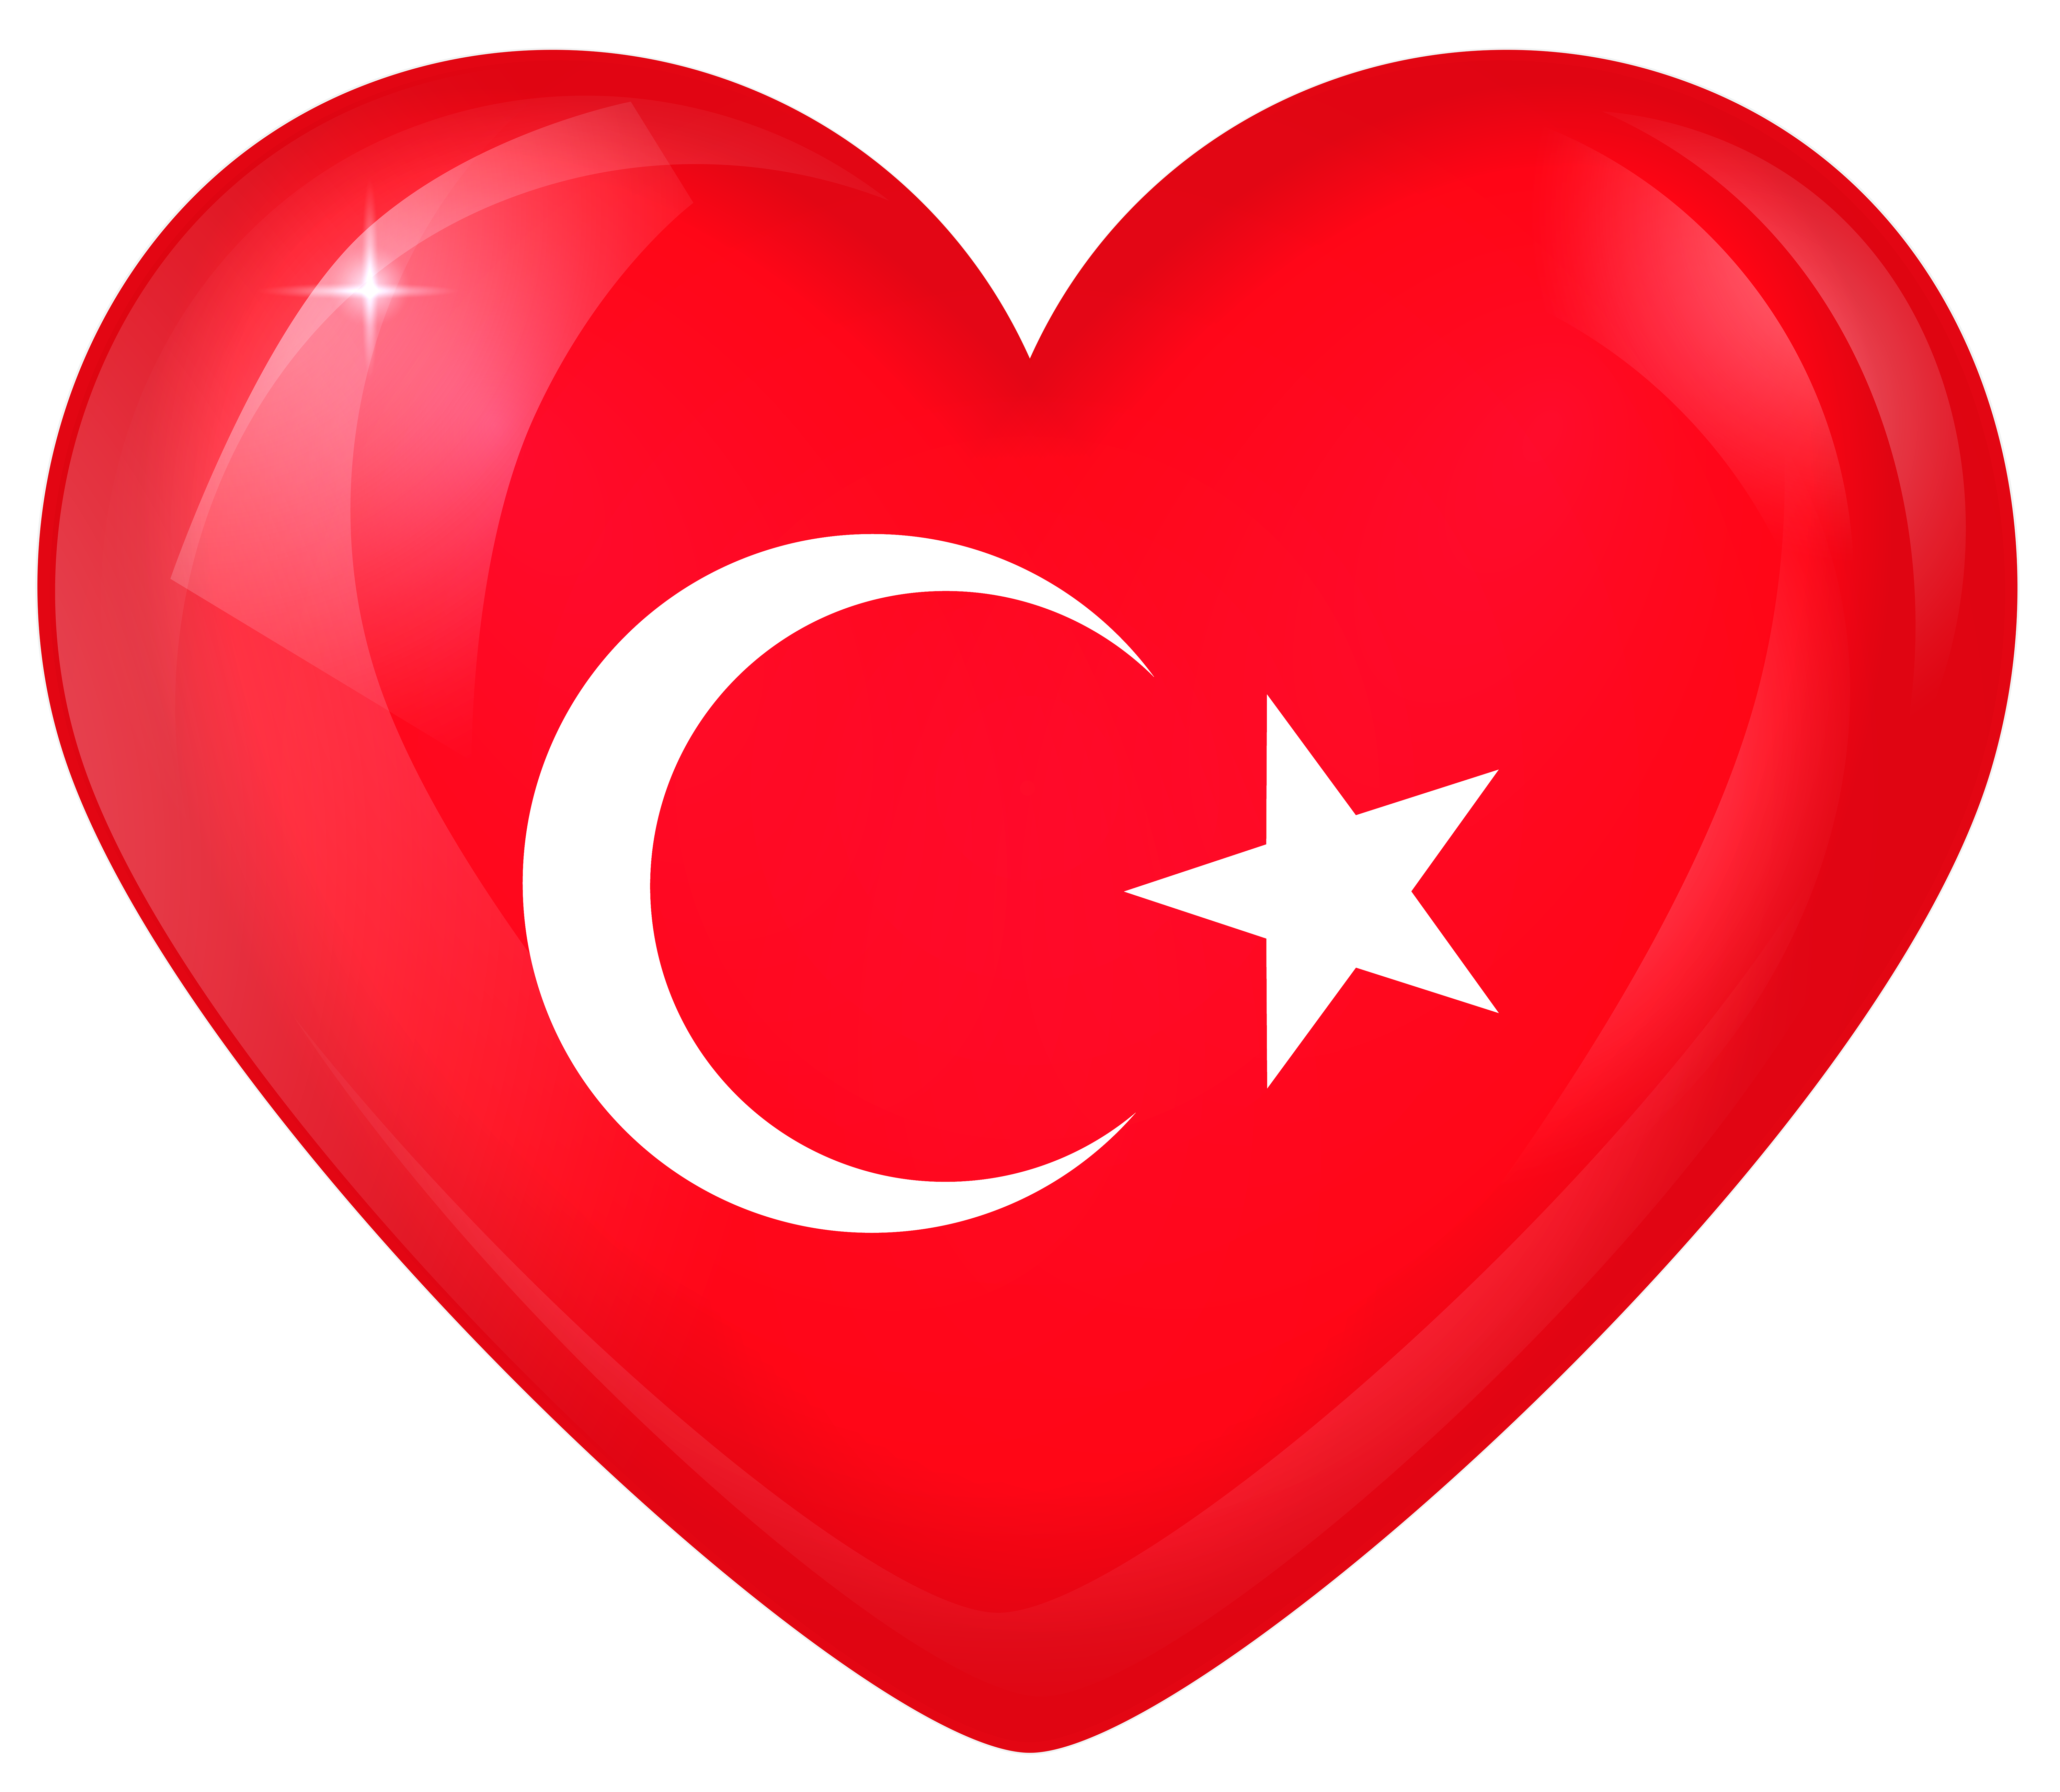 Turkey Large Heart Flag | Gallery Yopriceville - High-Quality ... clip art transparent